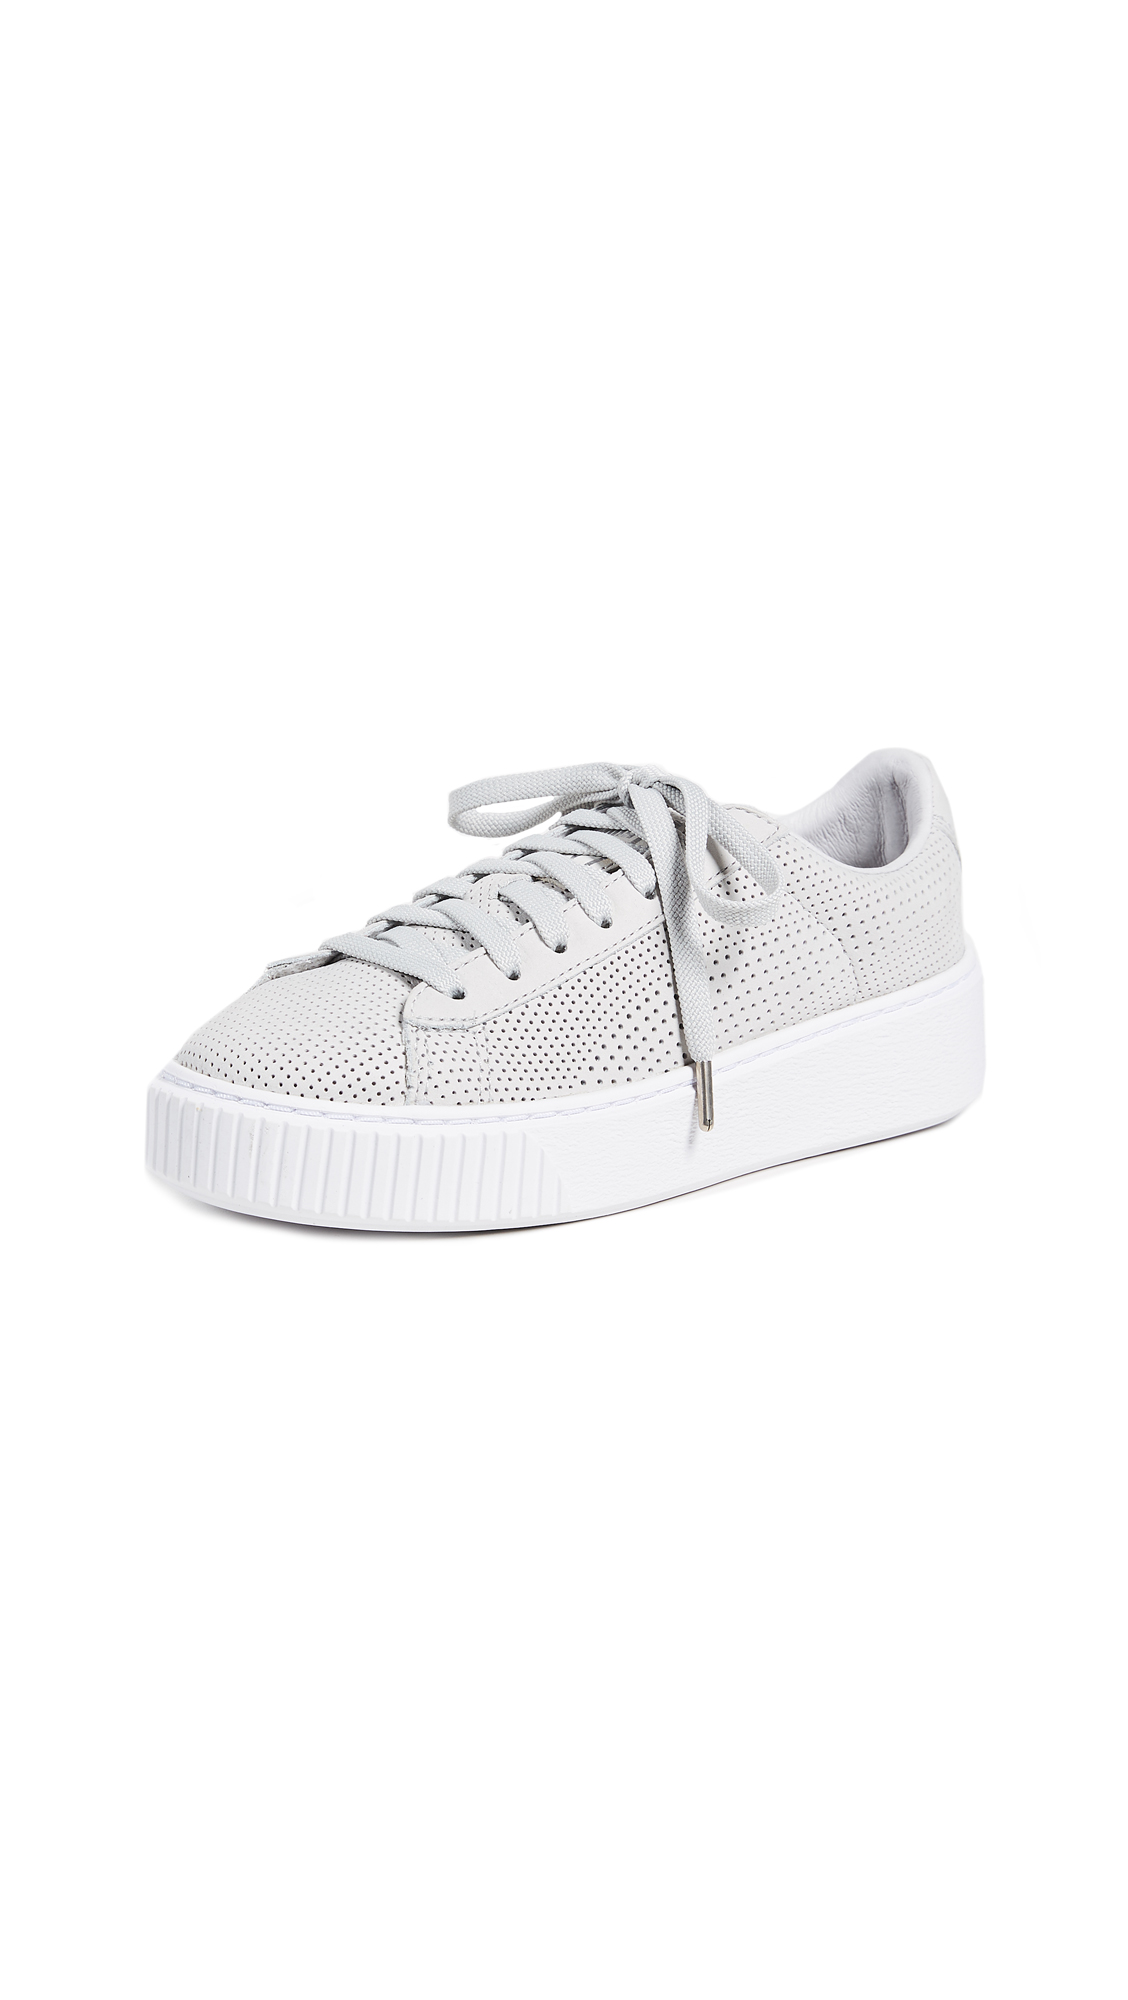 PUMA Basket Platform Perforated Sneakers - Grey Violet/Puma Silver